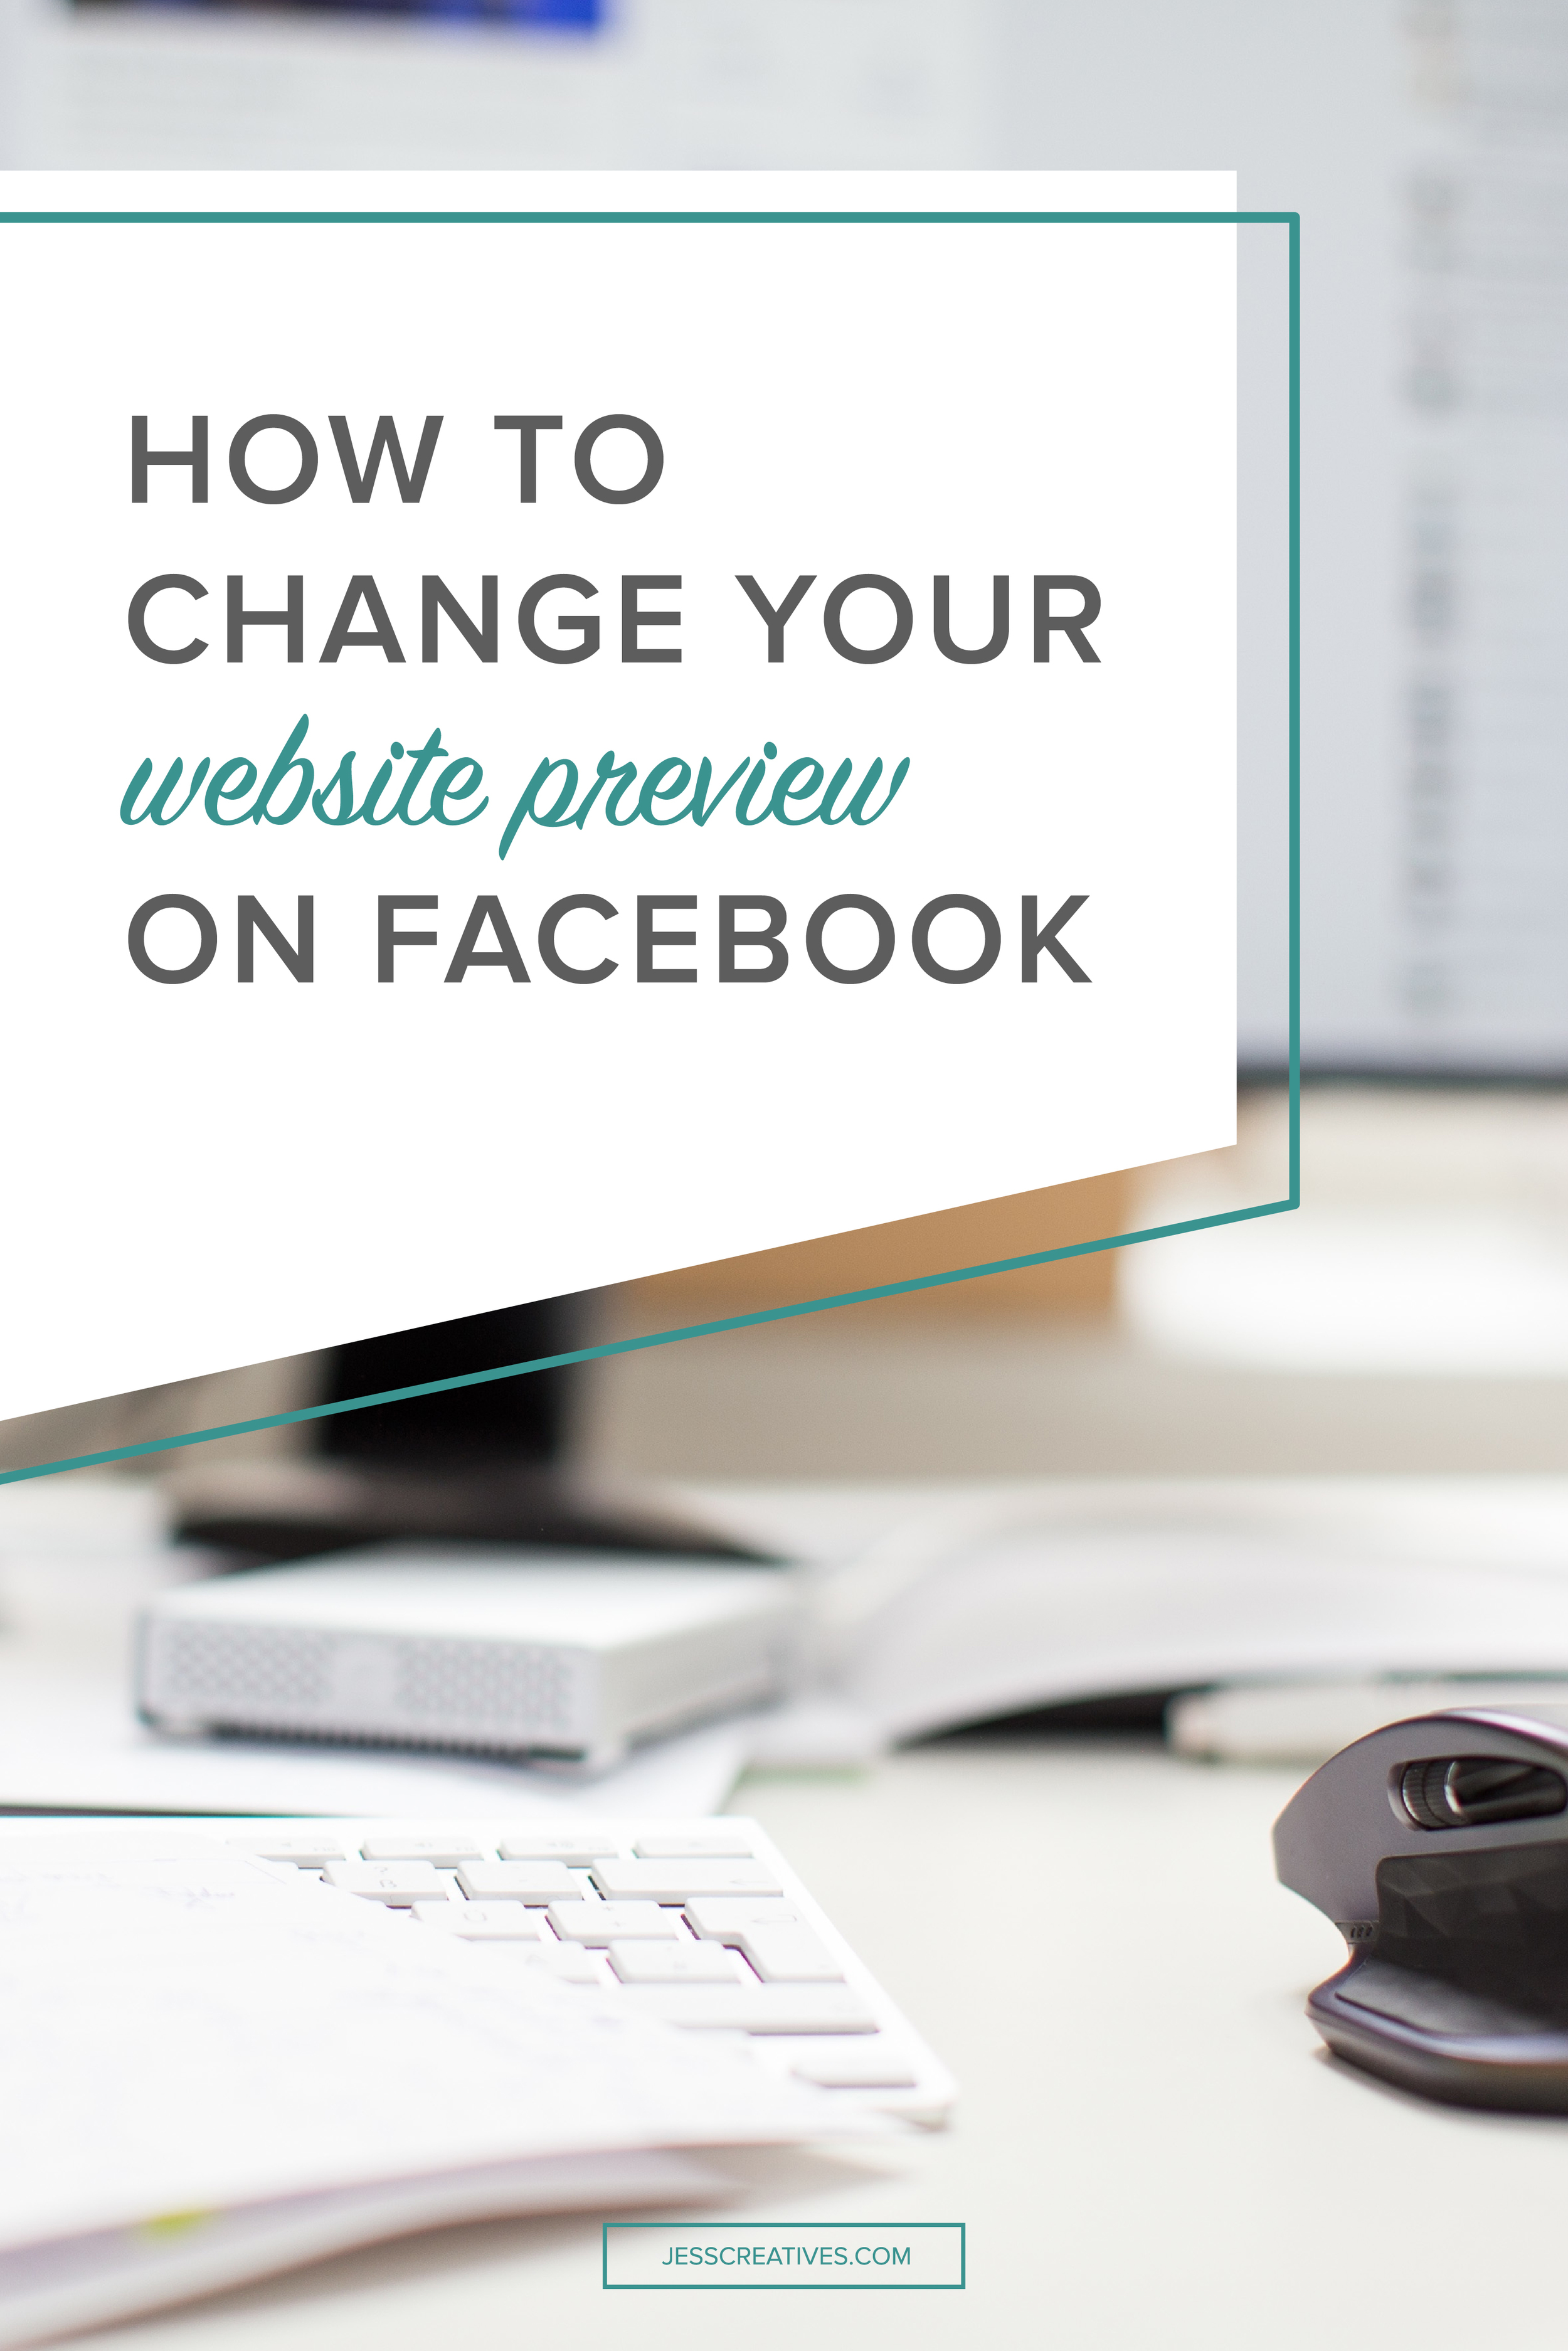 How to change your website preview on Facebook